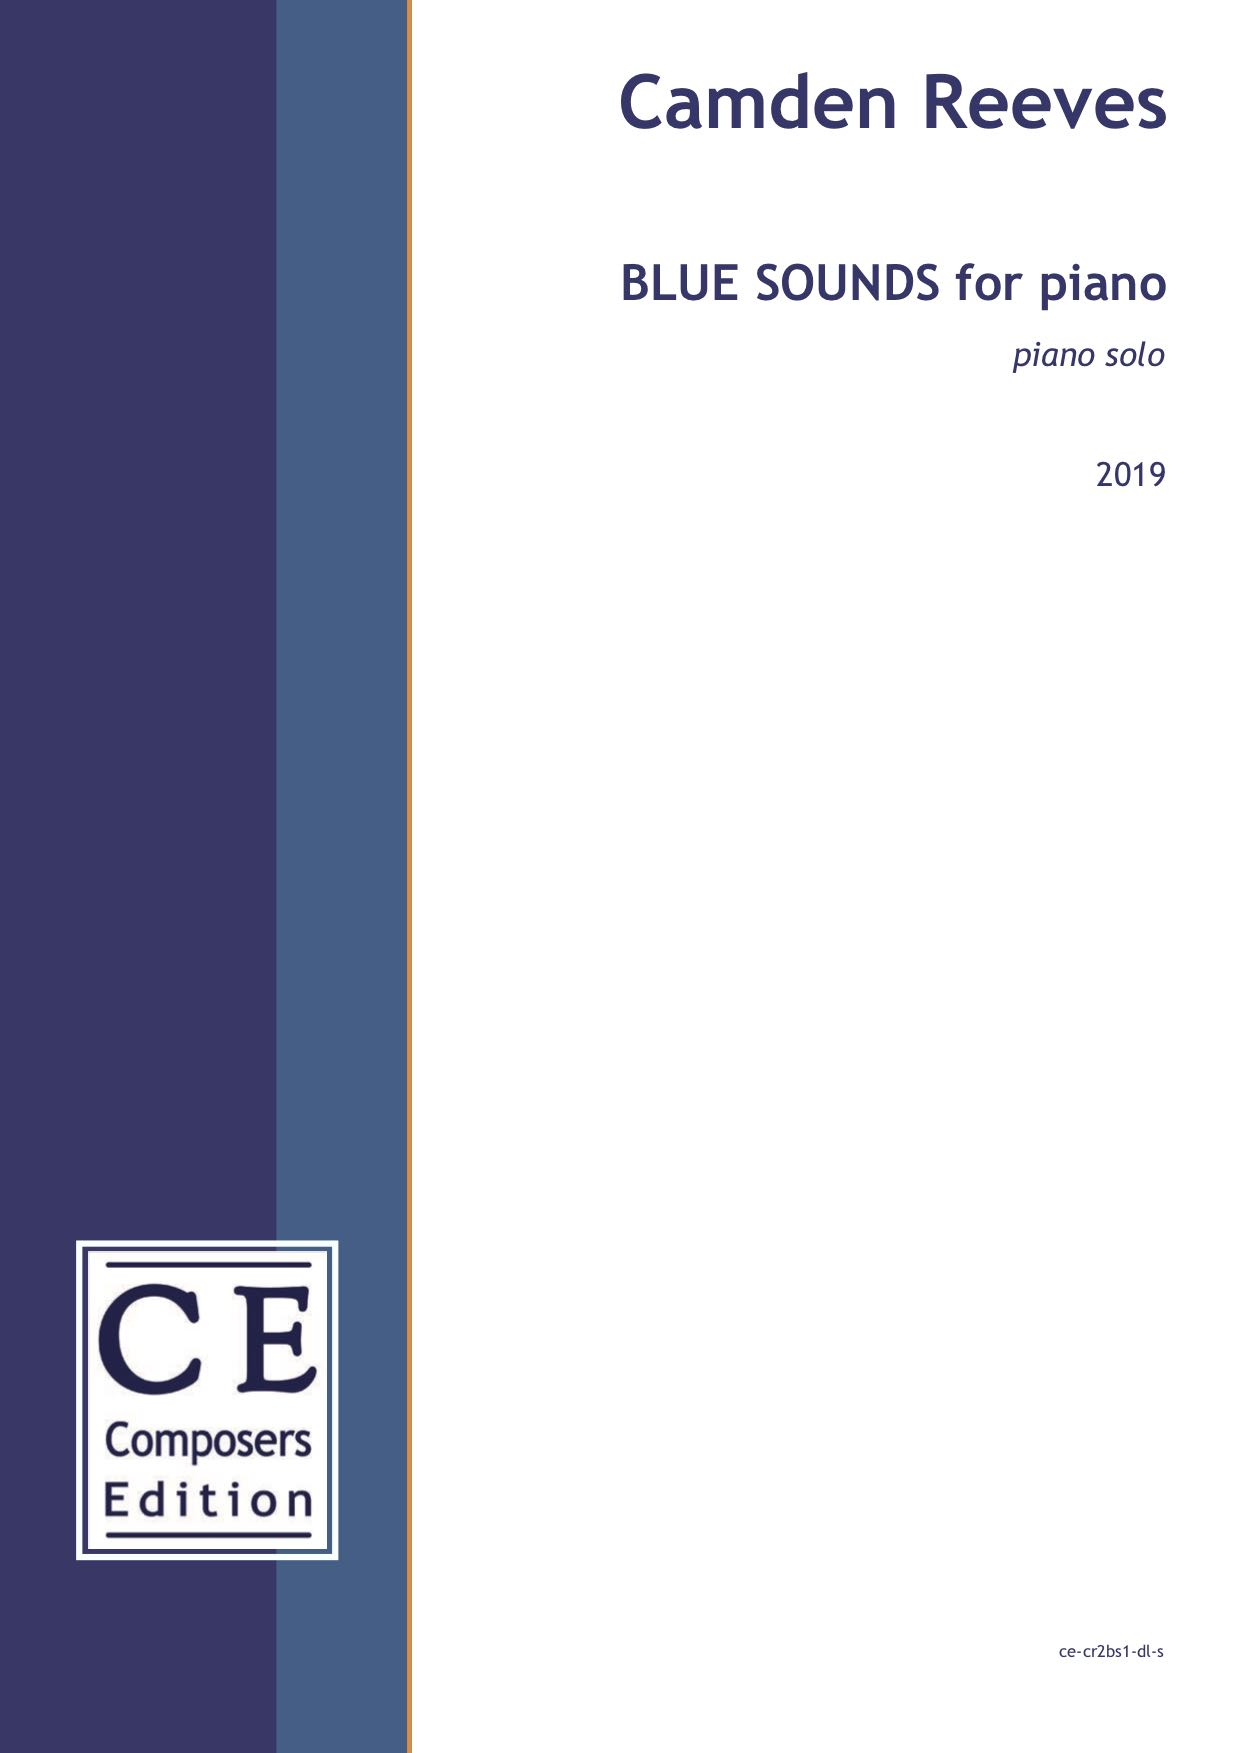 Camden Reeves Blue Sounds for Piano